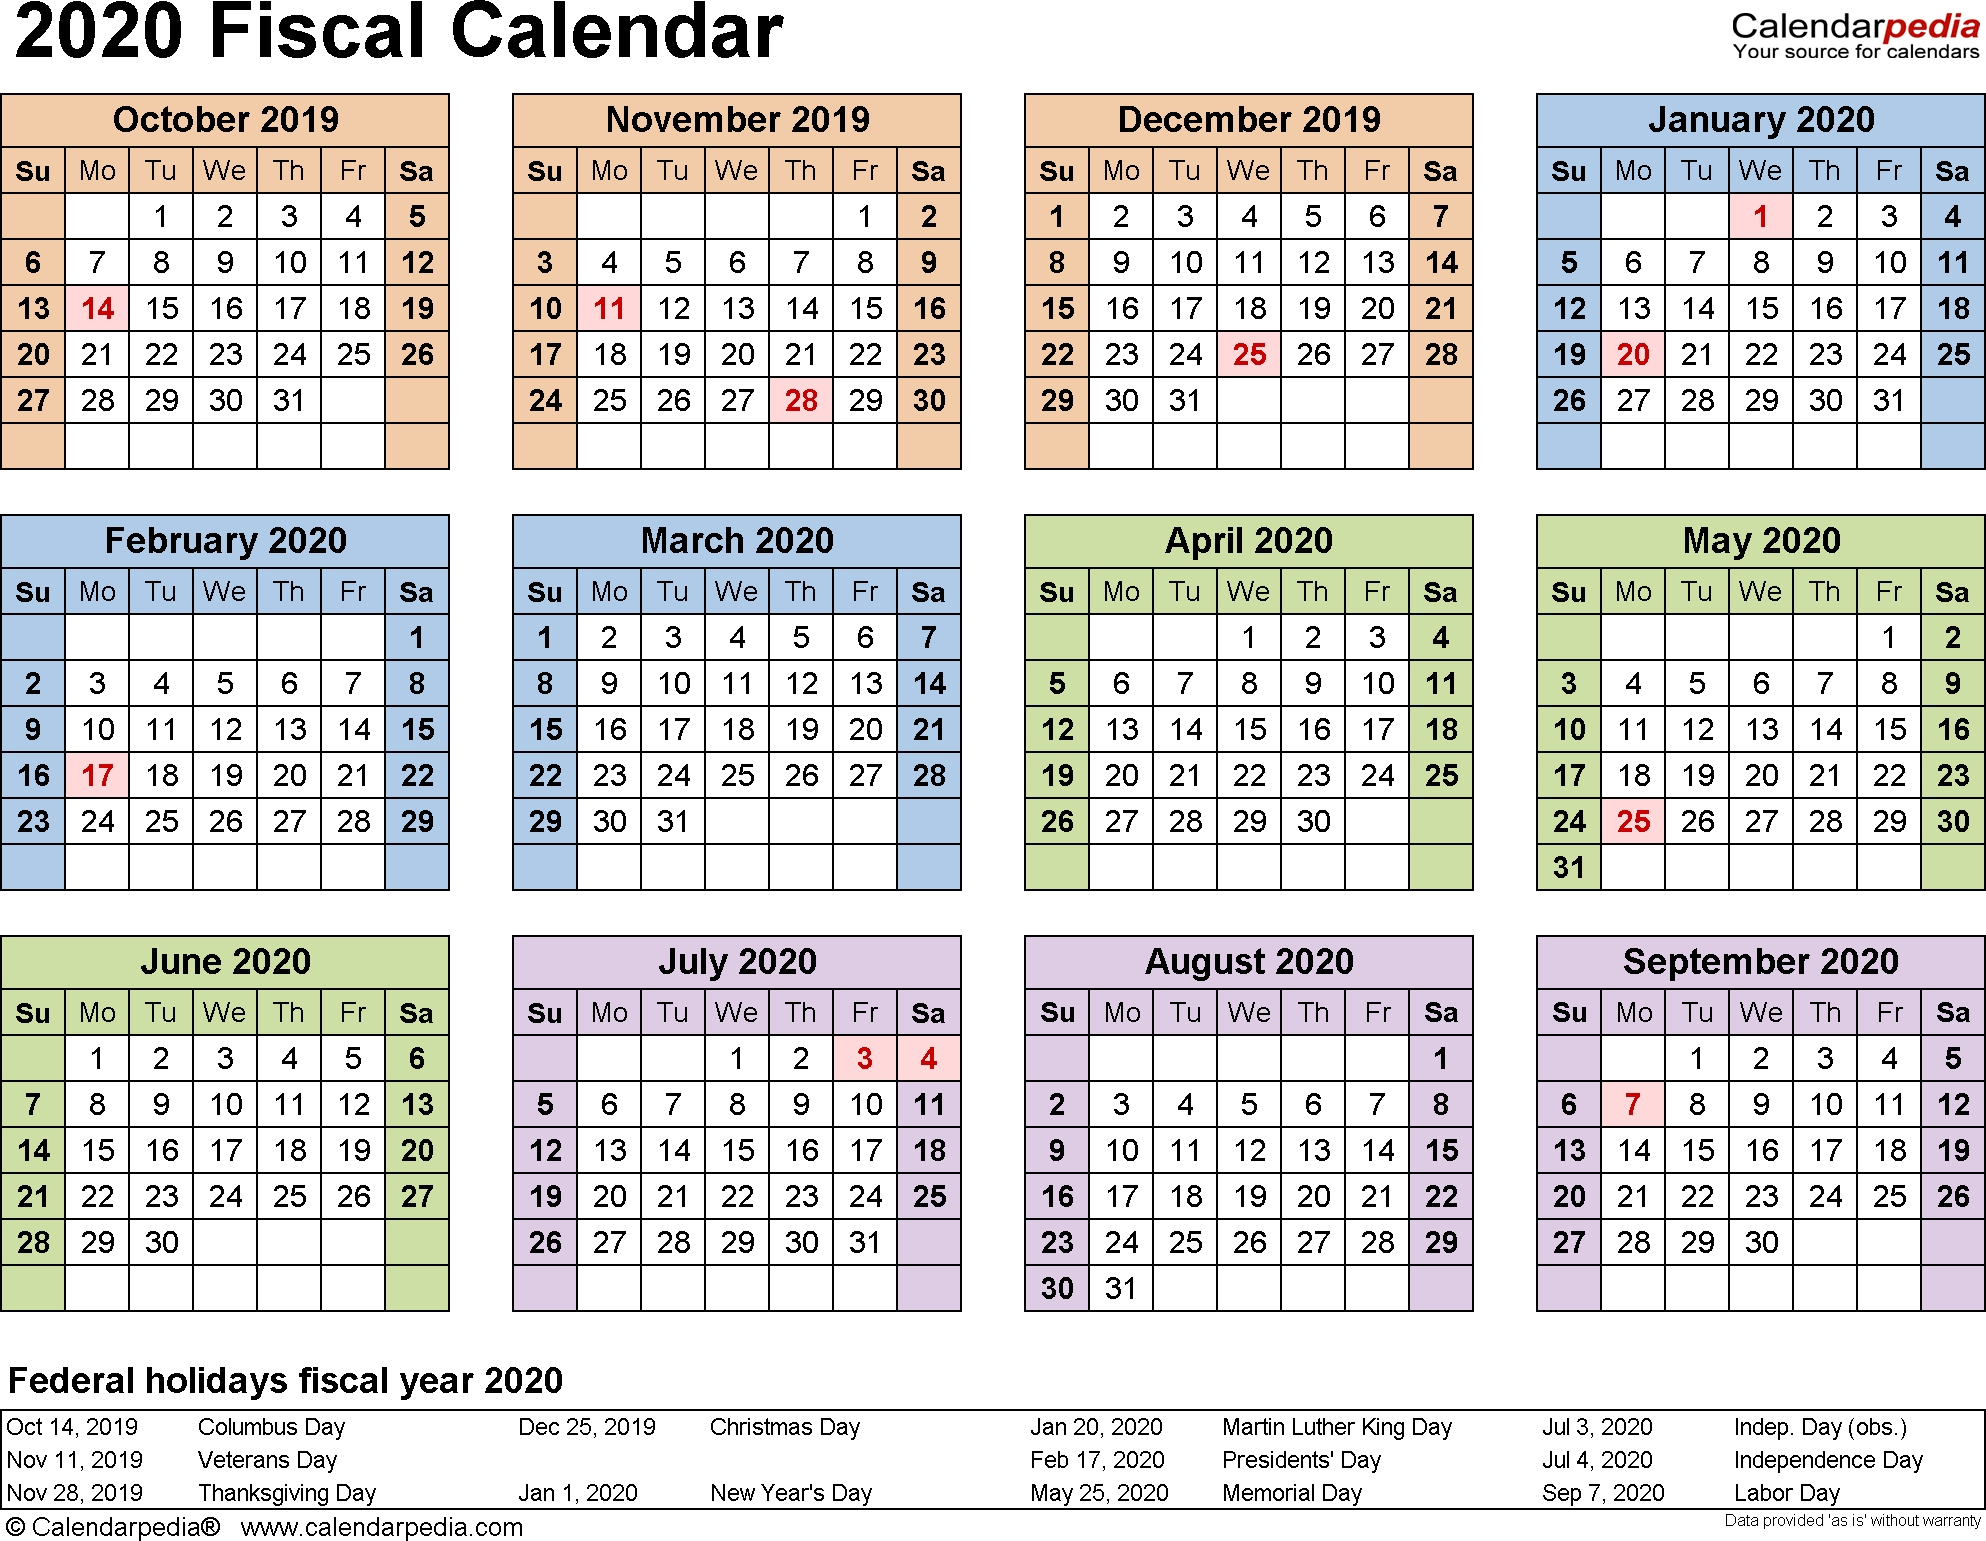 Fiscal Calendars 2020 As Free Printable Word Templates  Usaf Julian Date Calendar 2020 Printable